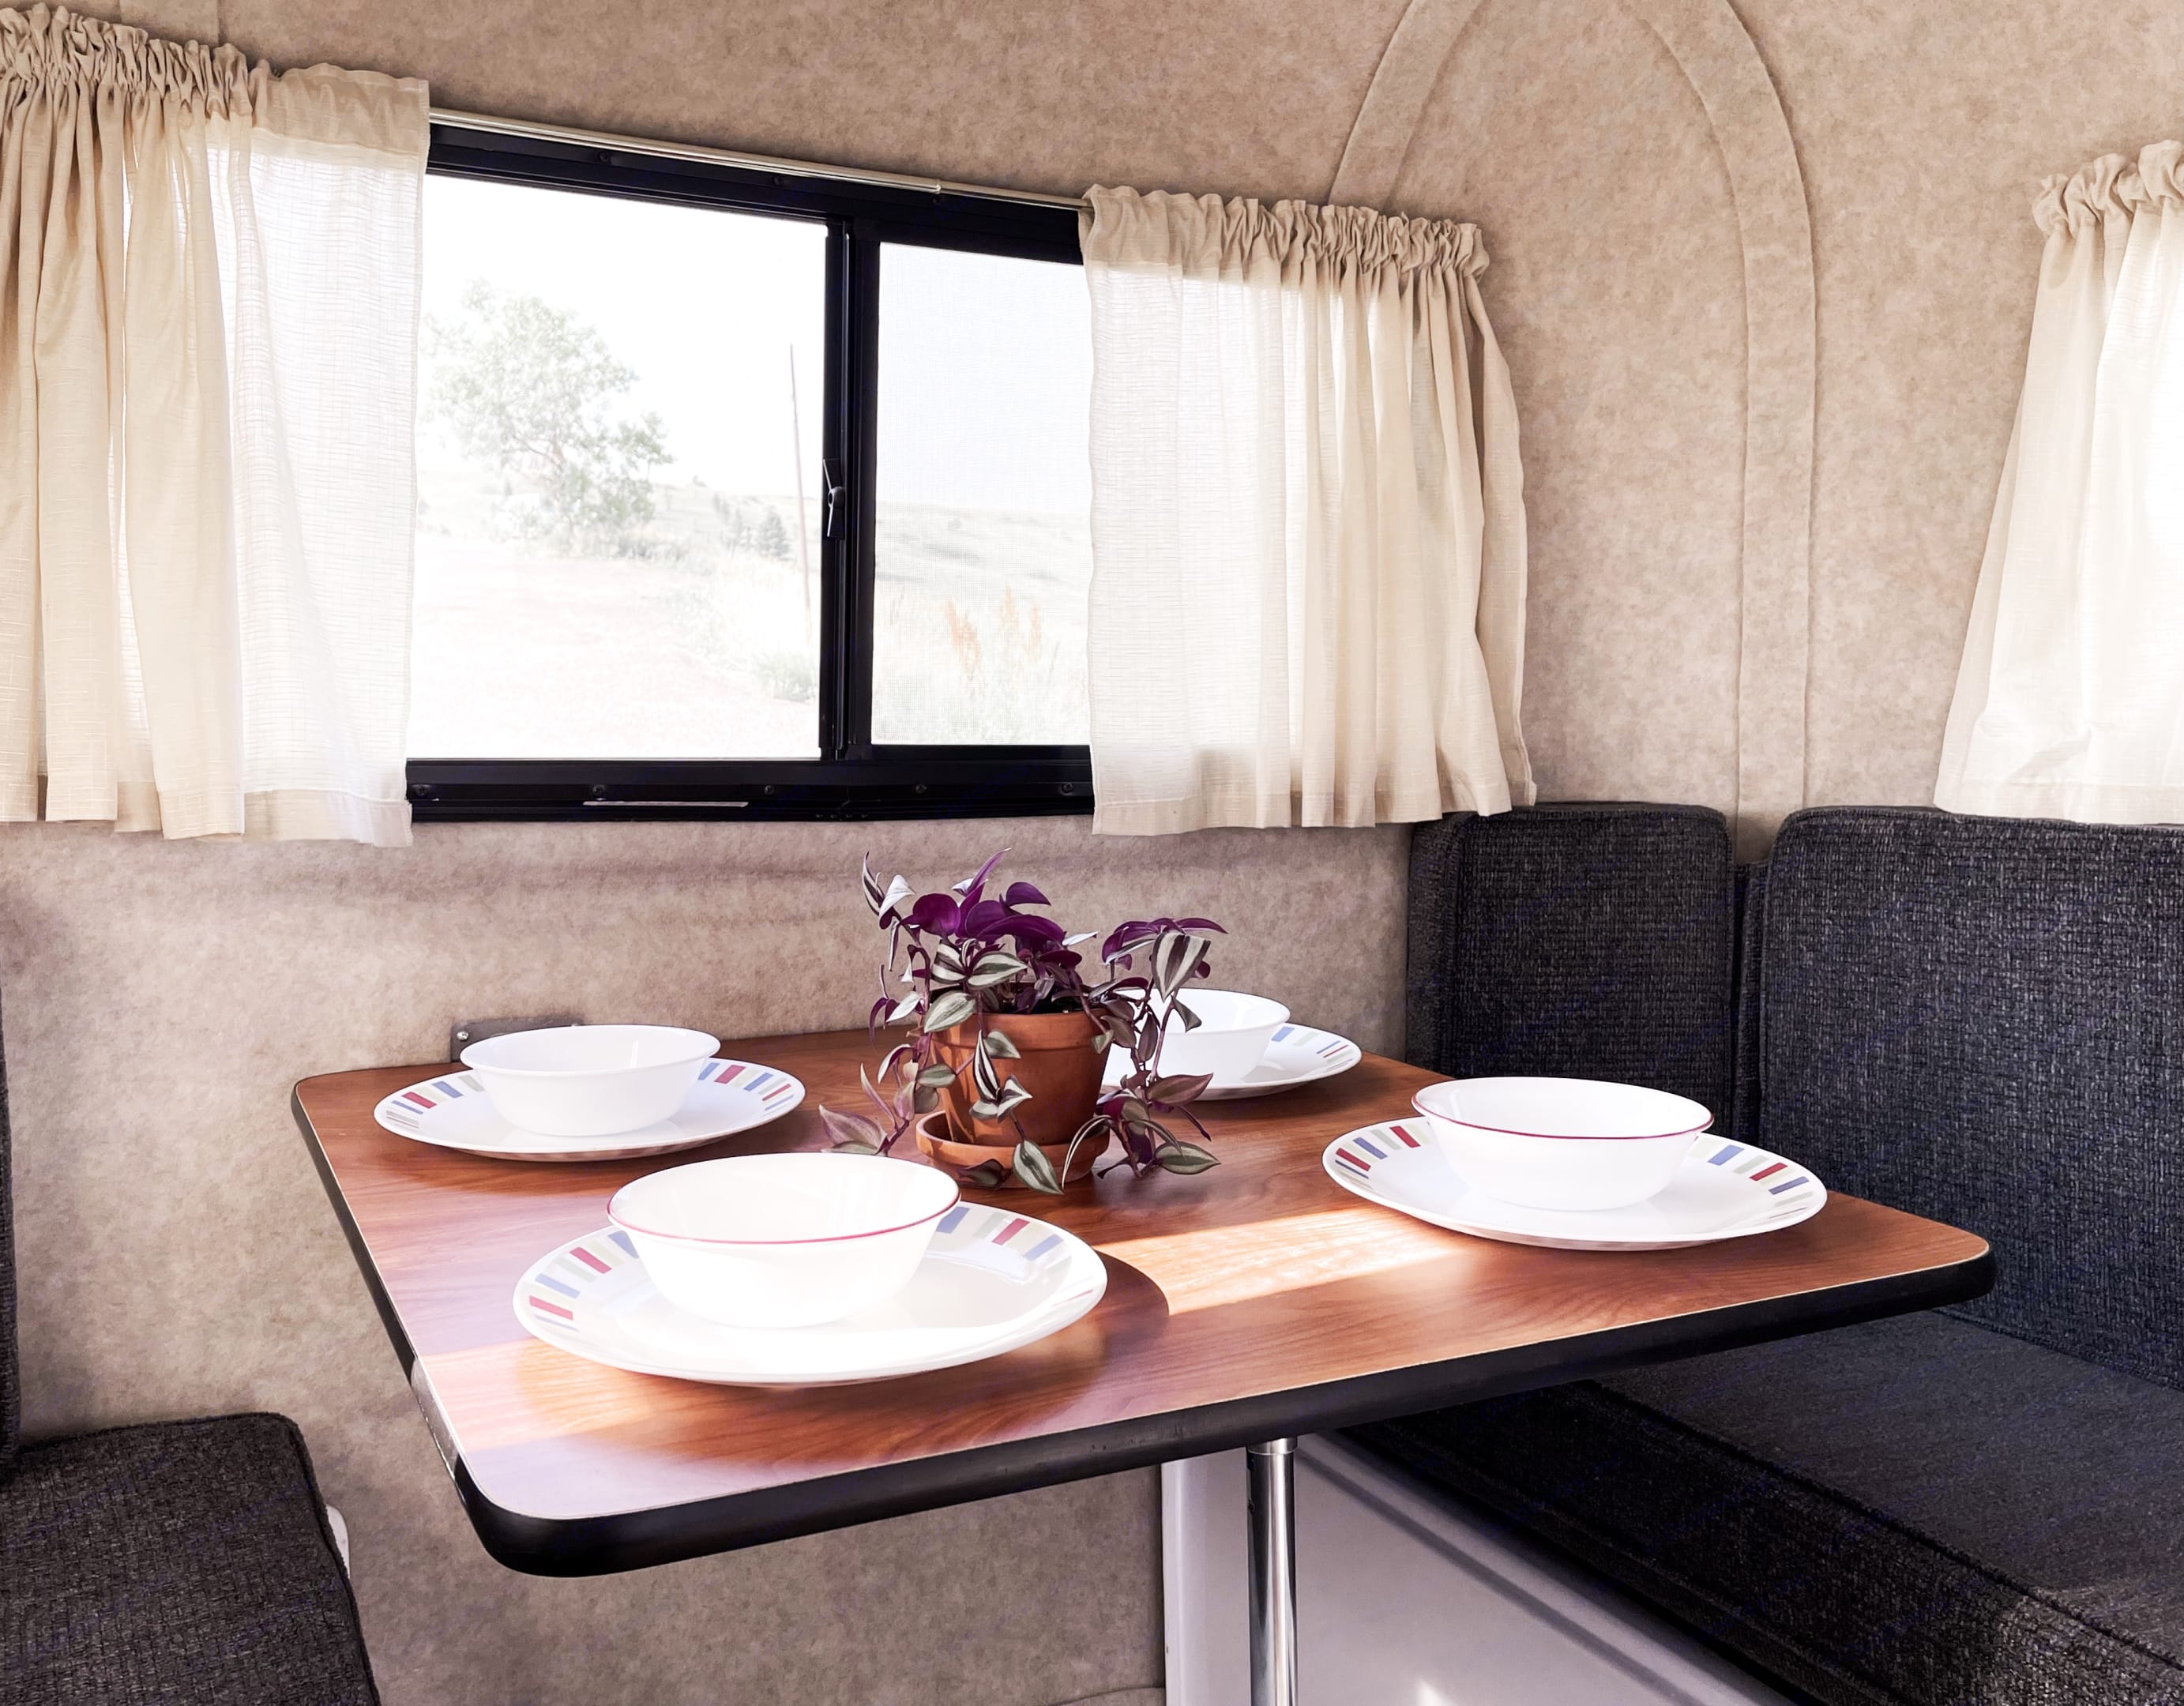 Skyler the 13' Scamp Travel Trailer has room for 4 people to dine comfortably.. Scamp 13' 2018